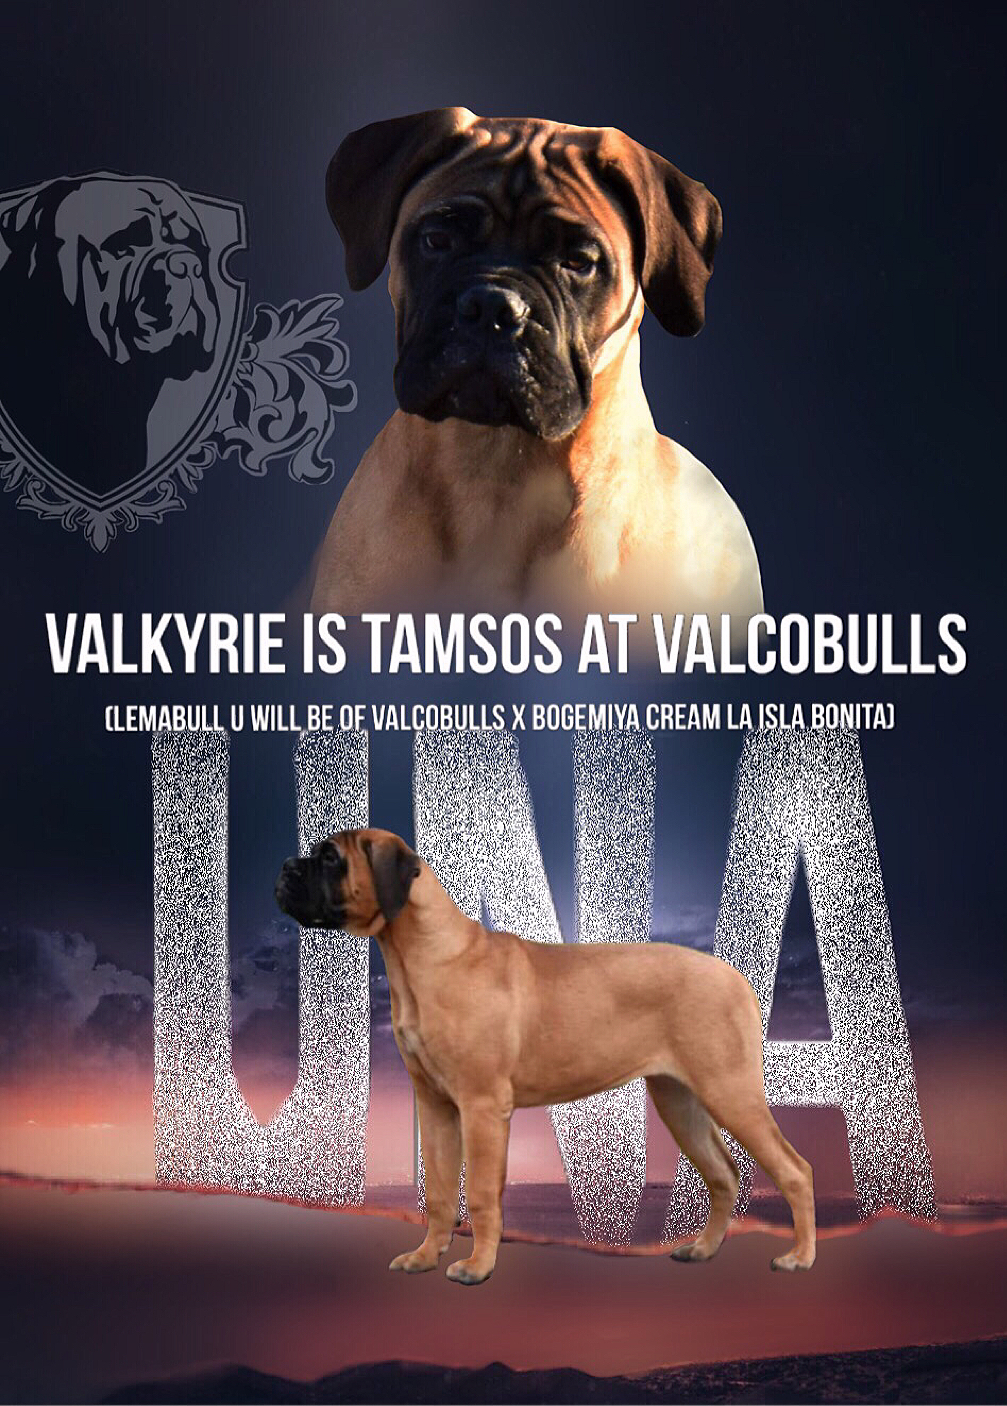 Valkyrie is Tamsos at Valcobulls